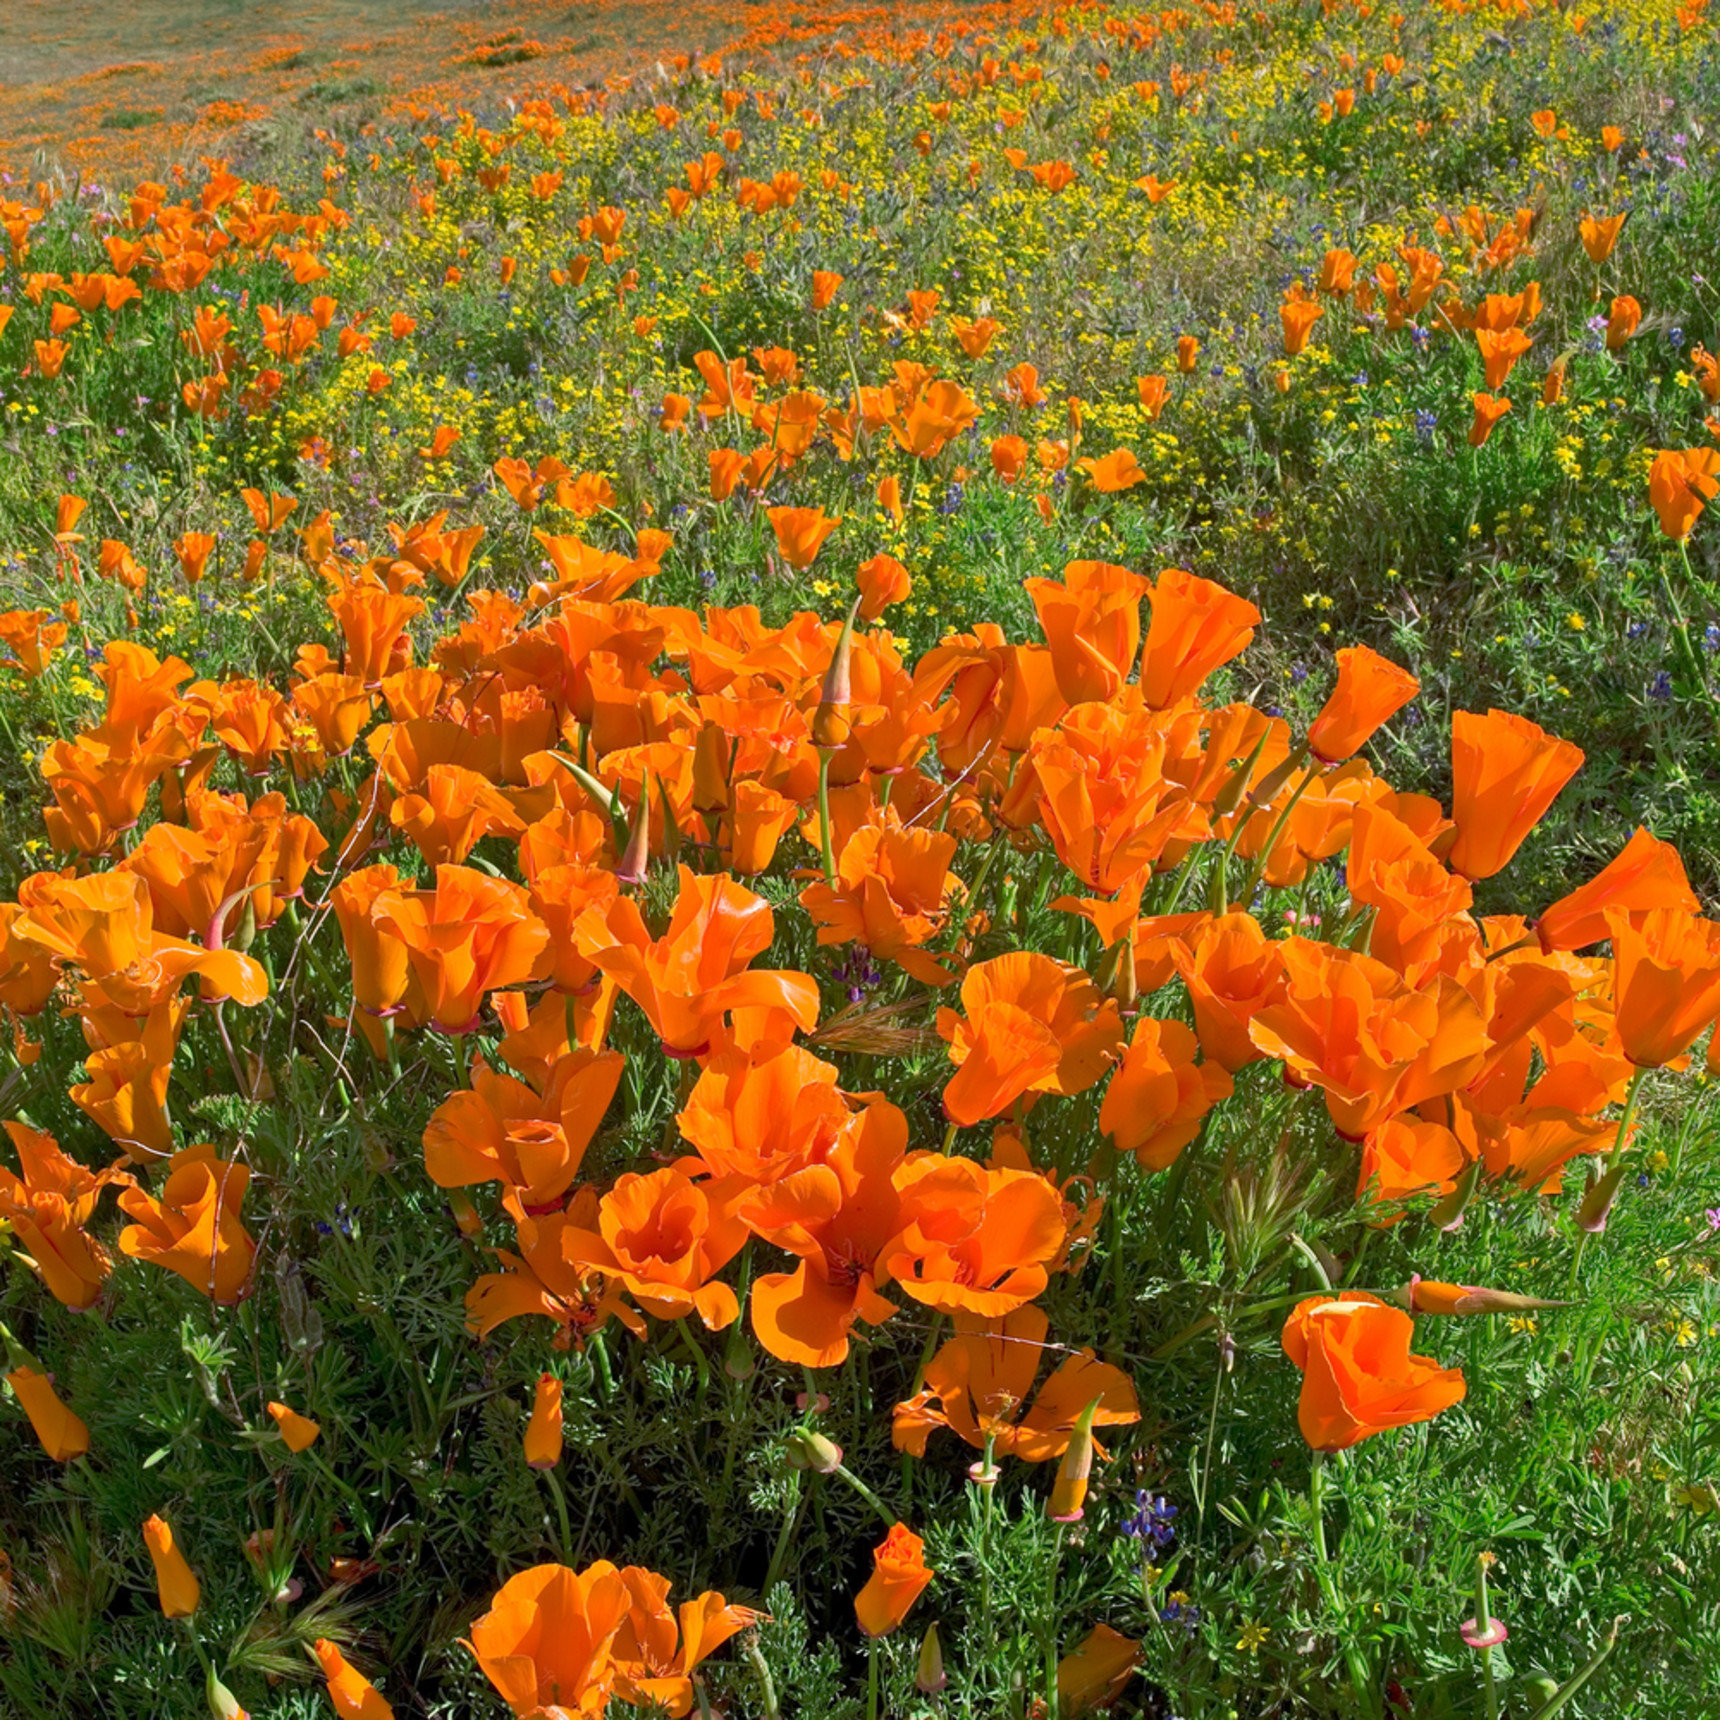 California poppies qeq3xt